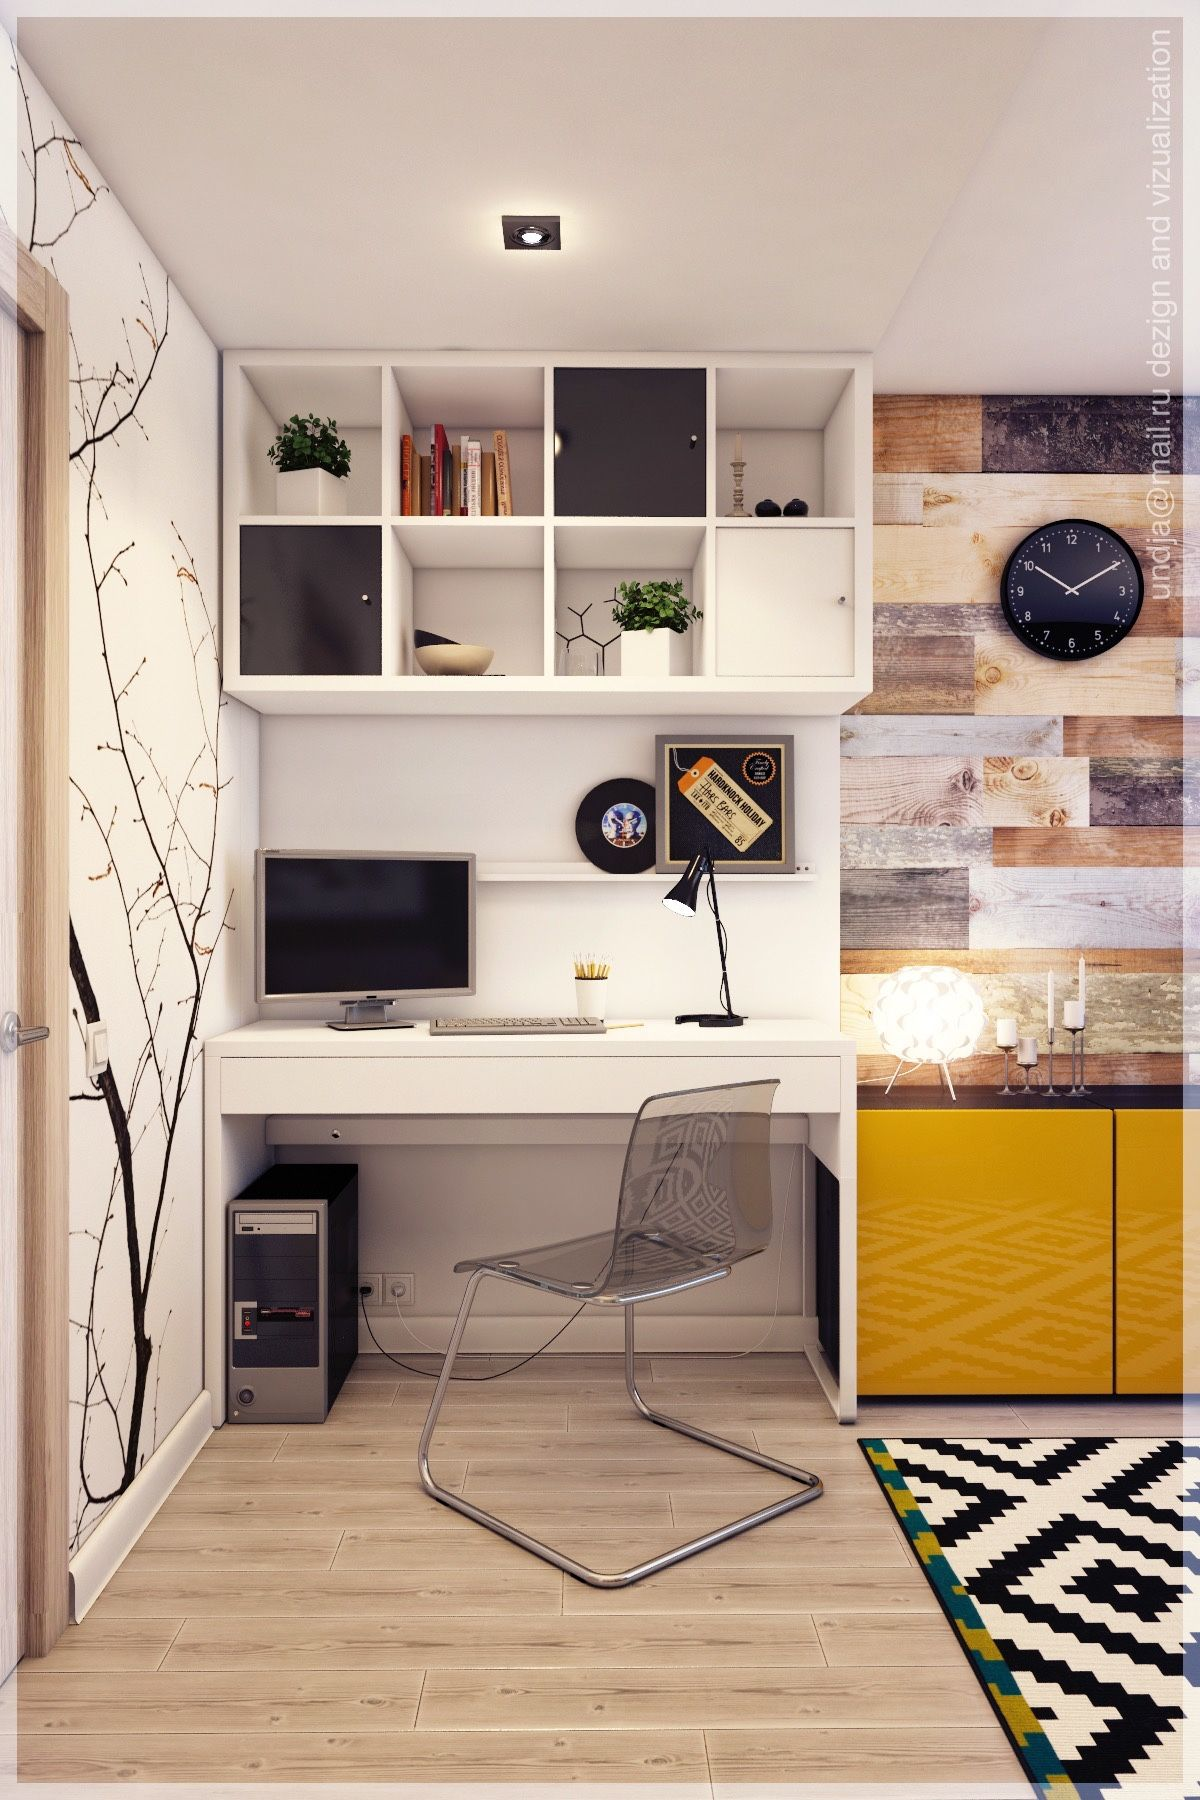 Contemporary study table designs your home deserves to have - Contemporary Study Table Designs Your Home Deserves To Have Home Designing Via Refresh Your Workspace Download